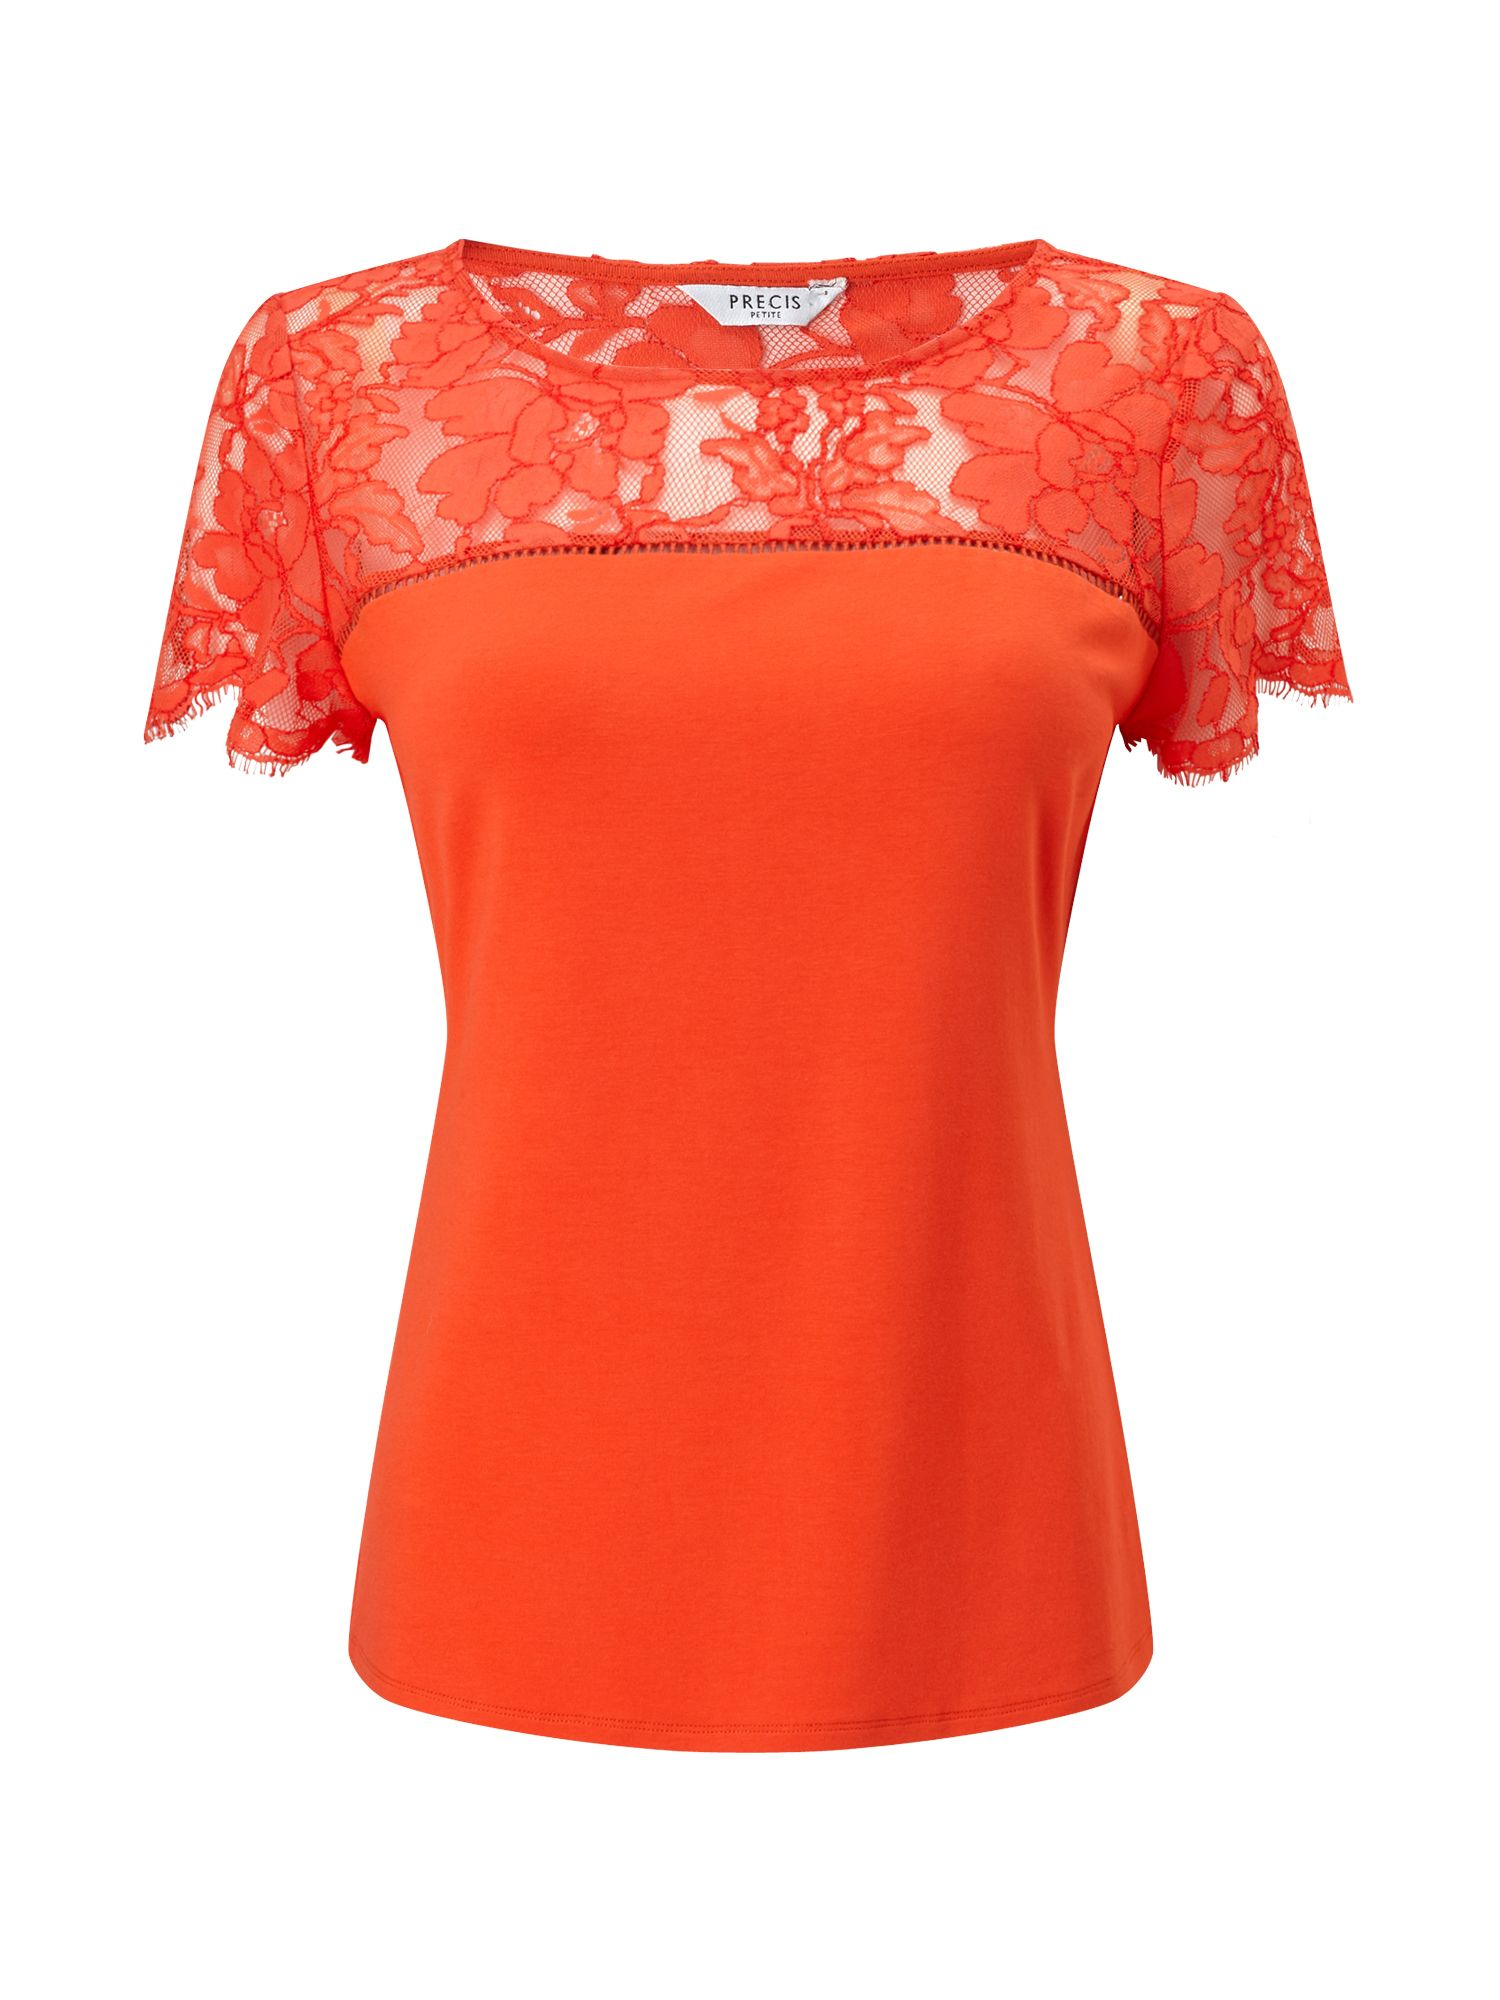 Precis Petite Petite Lace Mix Tee, Orange